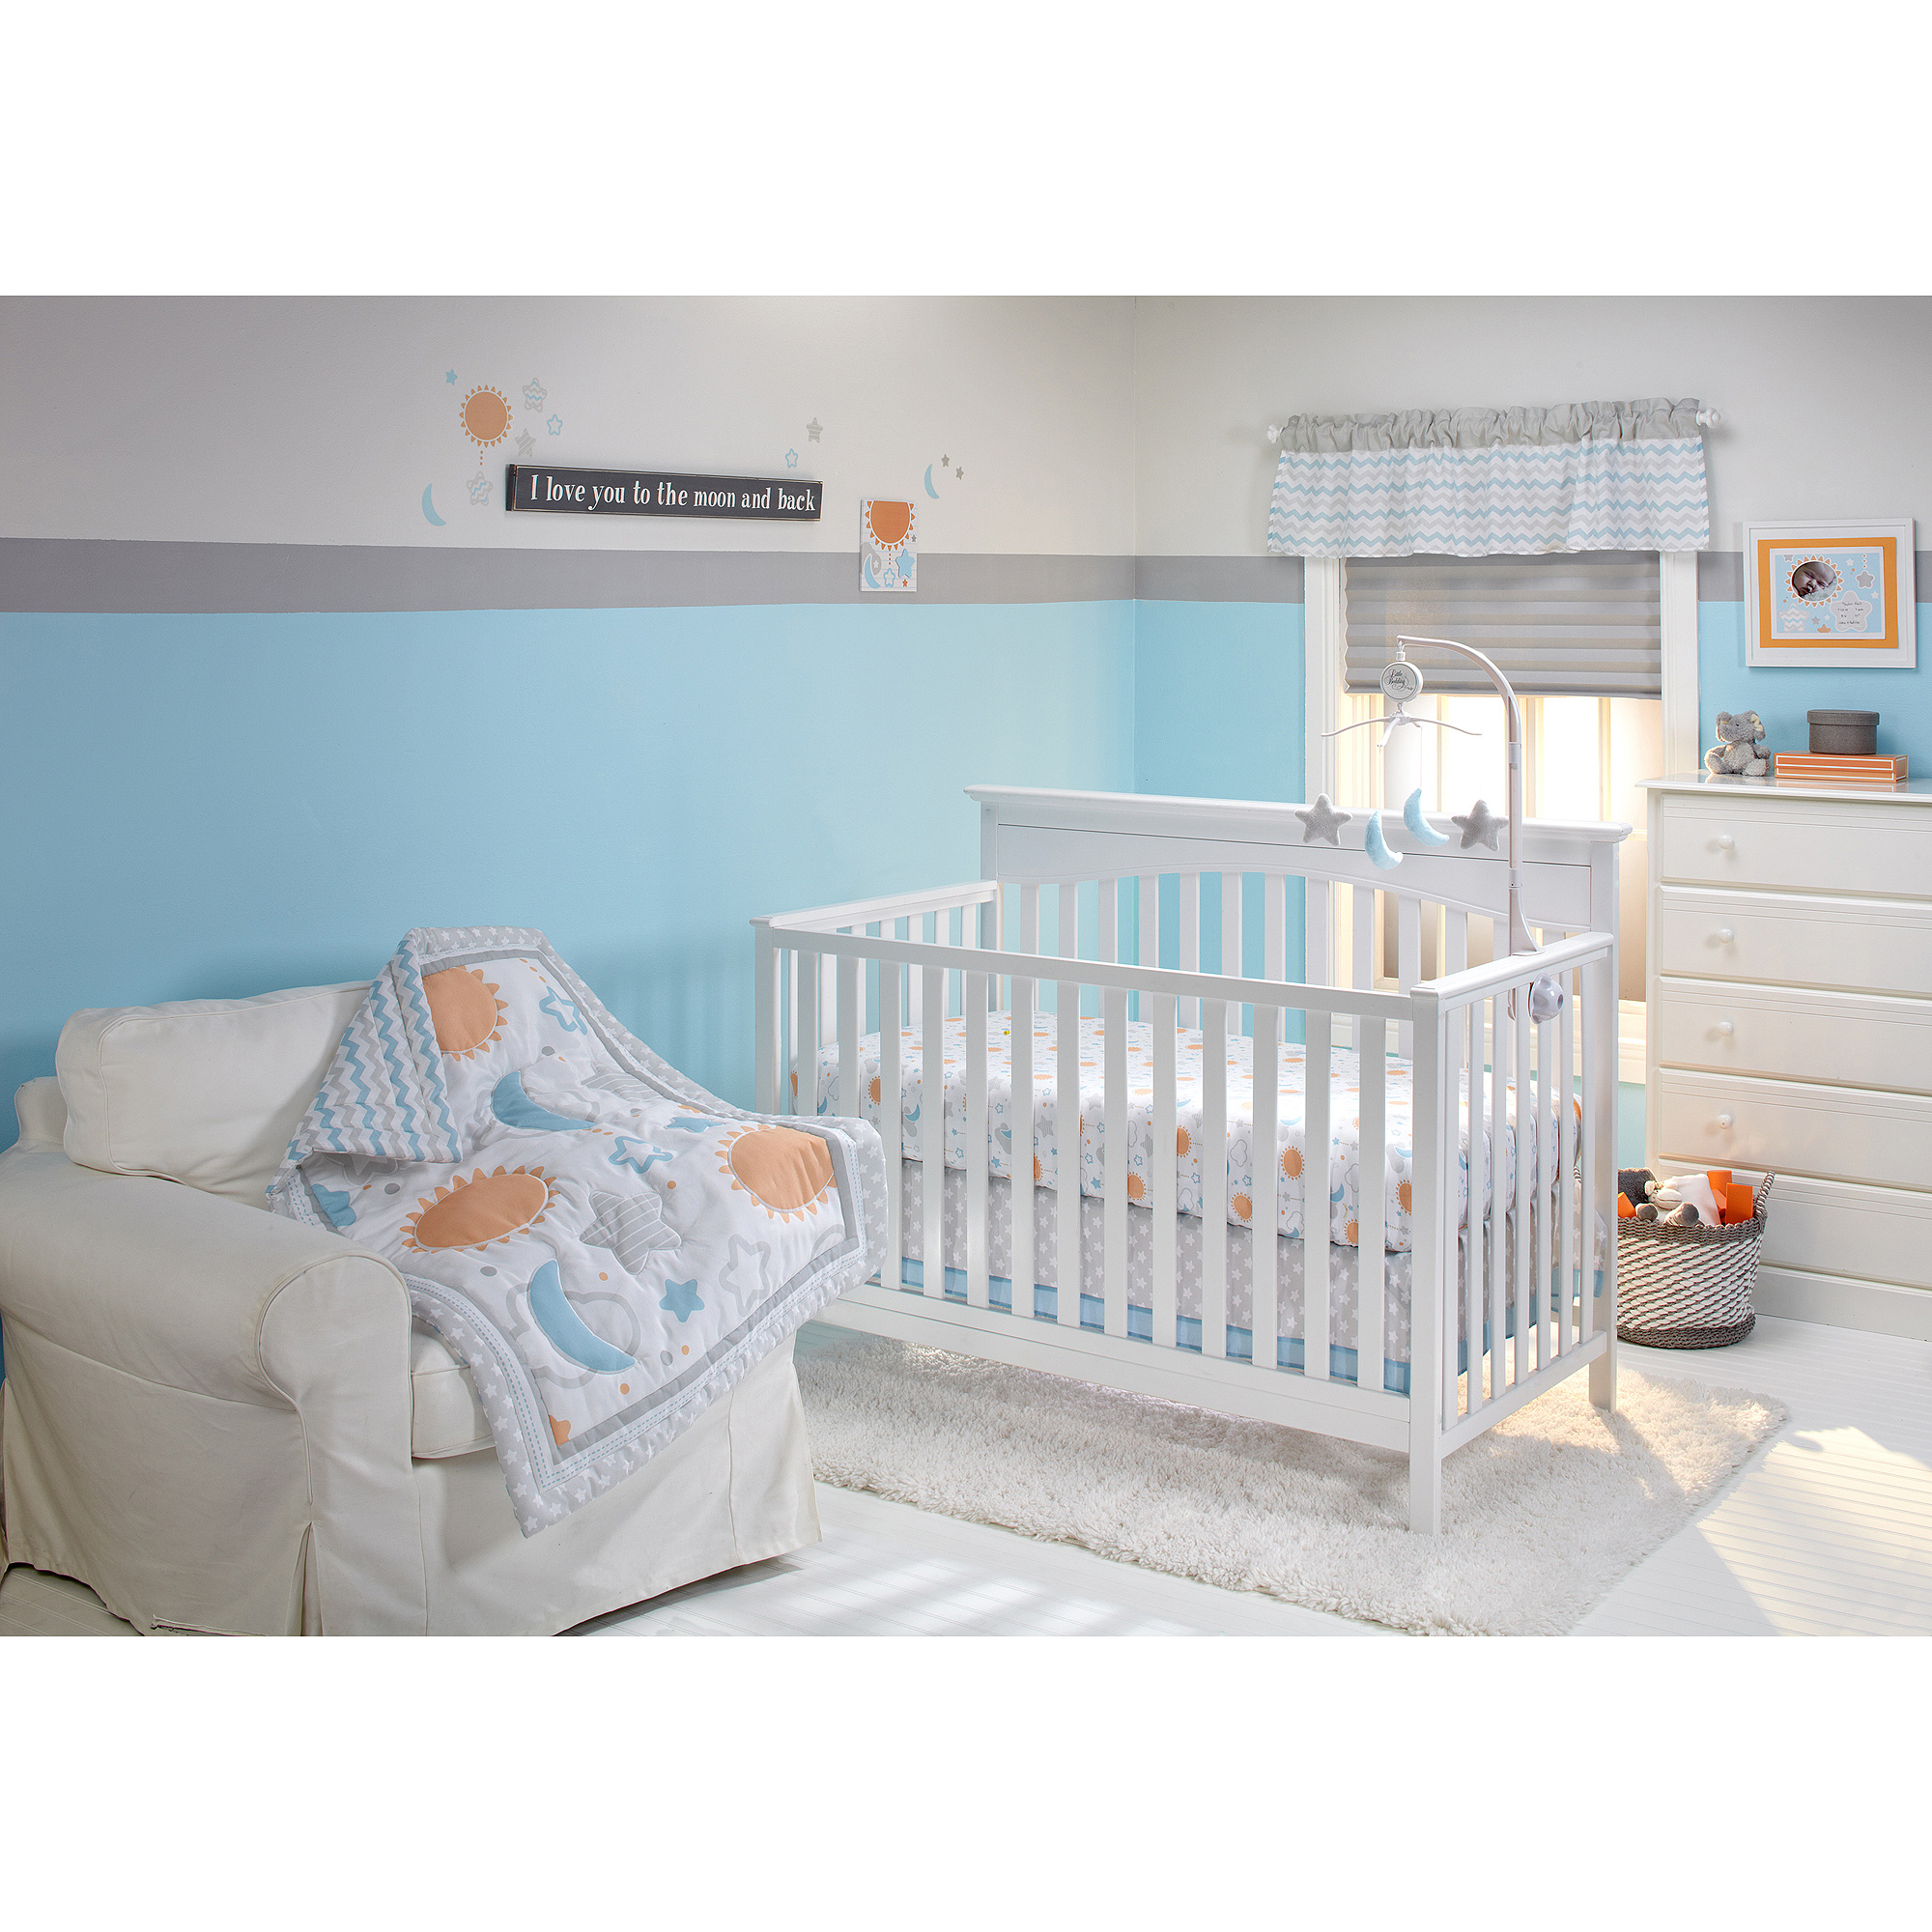 Little Bedding by NoJo Celestial Baby 10-Piece Crib Bedding Set